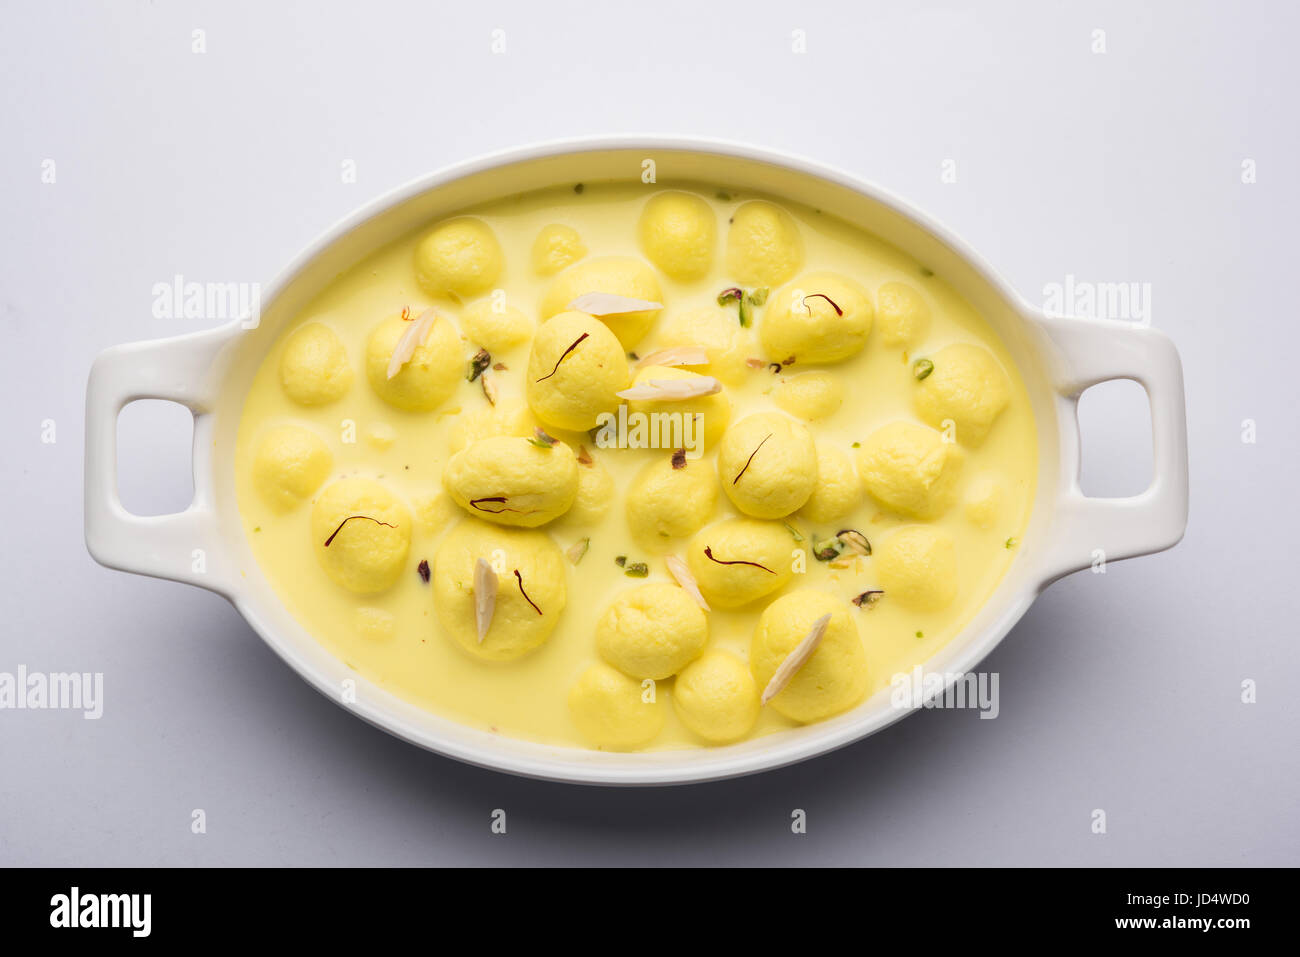 Angoori rasmalai or anguri ras malai is an Indian dessert. Made from cottage cheese which is then soaked in chashni, - Stock Image